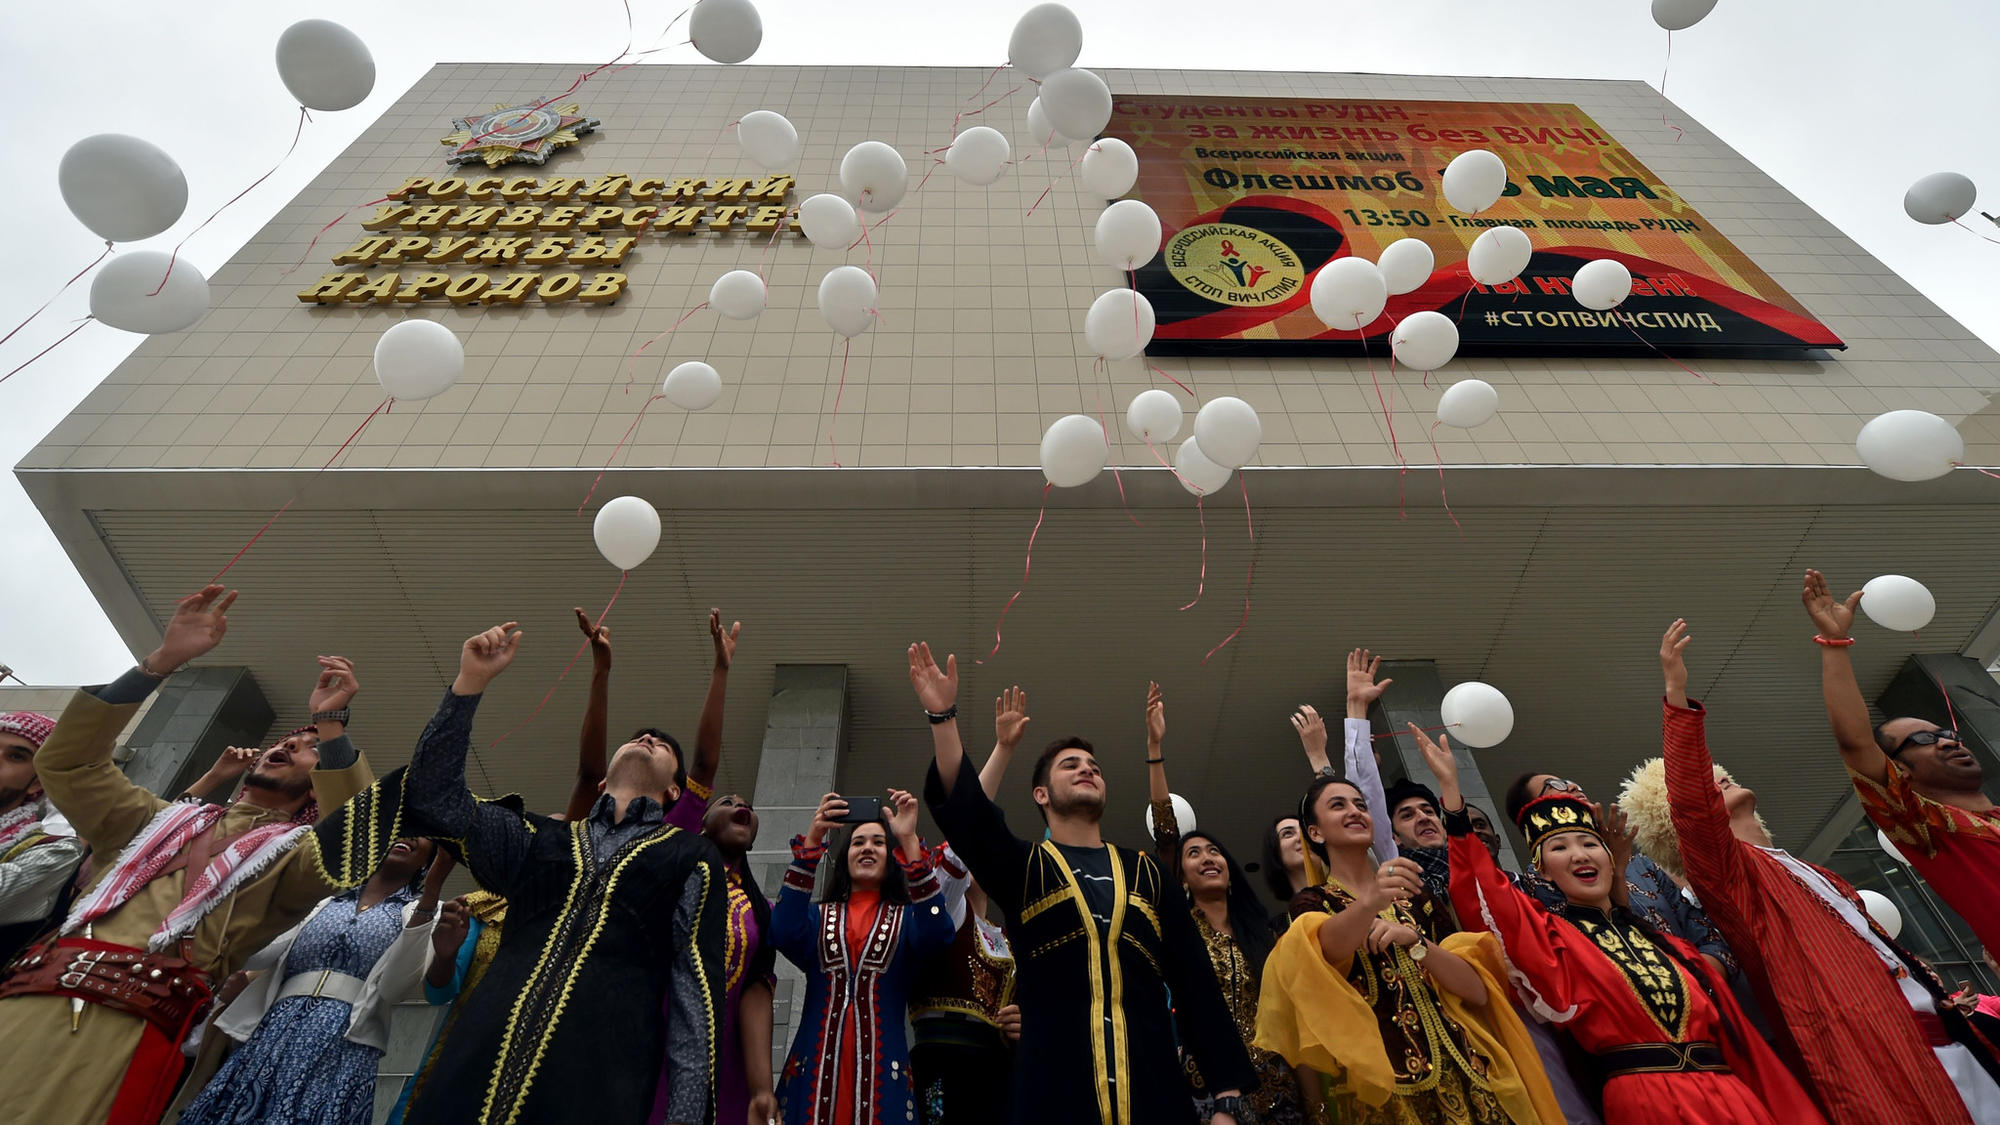 Students wearing traditional outfits release white balloons during an HIV/AIDS awareness rally in at the University of Peoples' Friendship in Moscow in May.